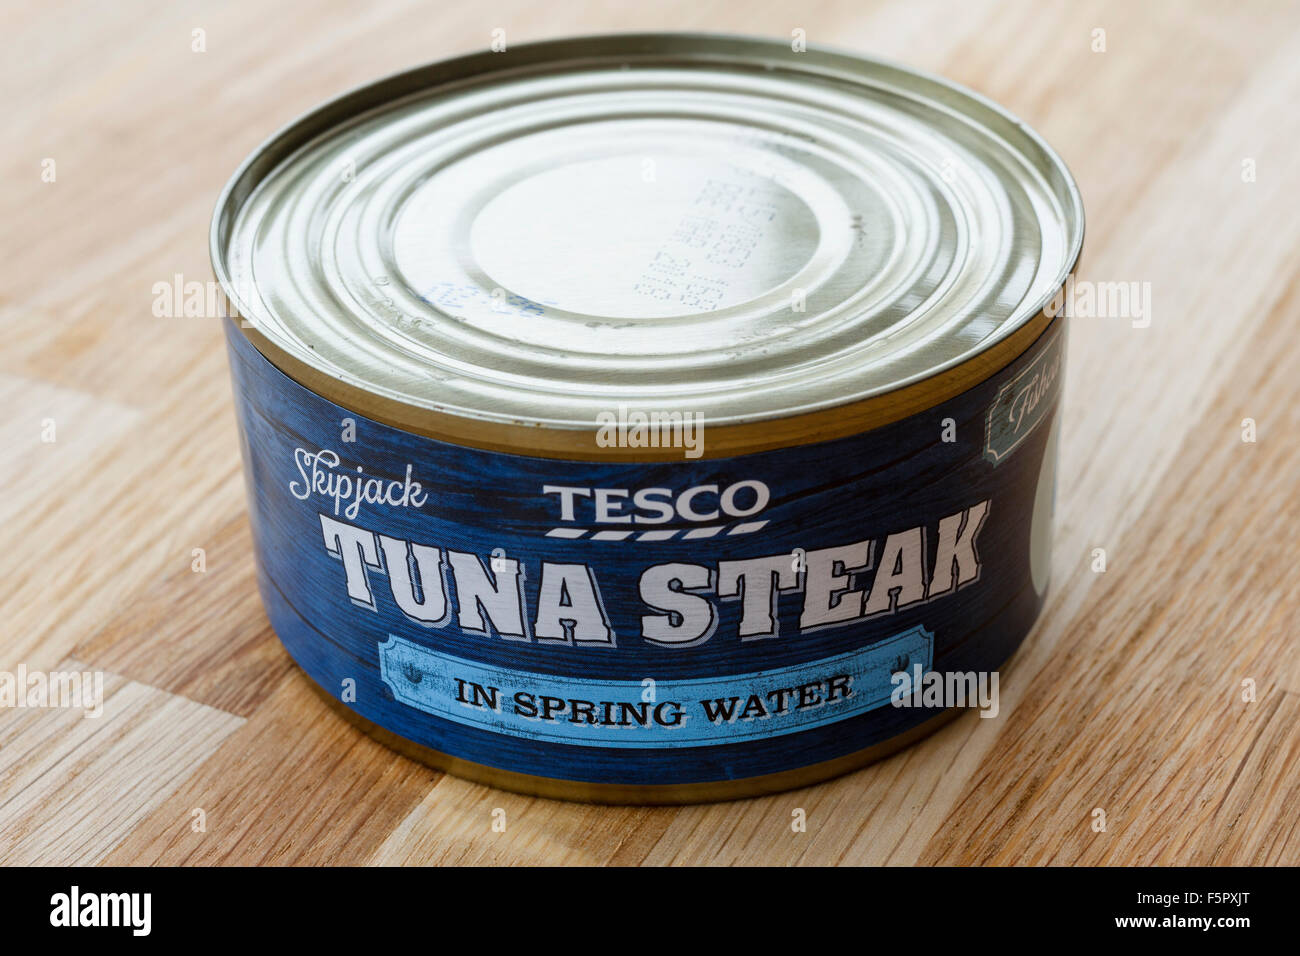 Tin of Tesco tuna steak in spring water - Stock Image